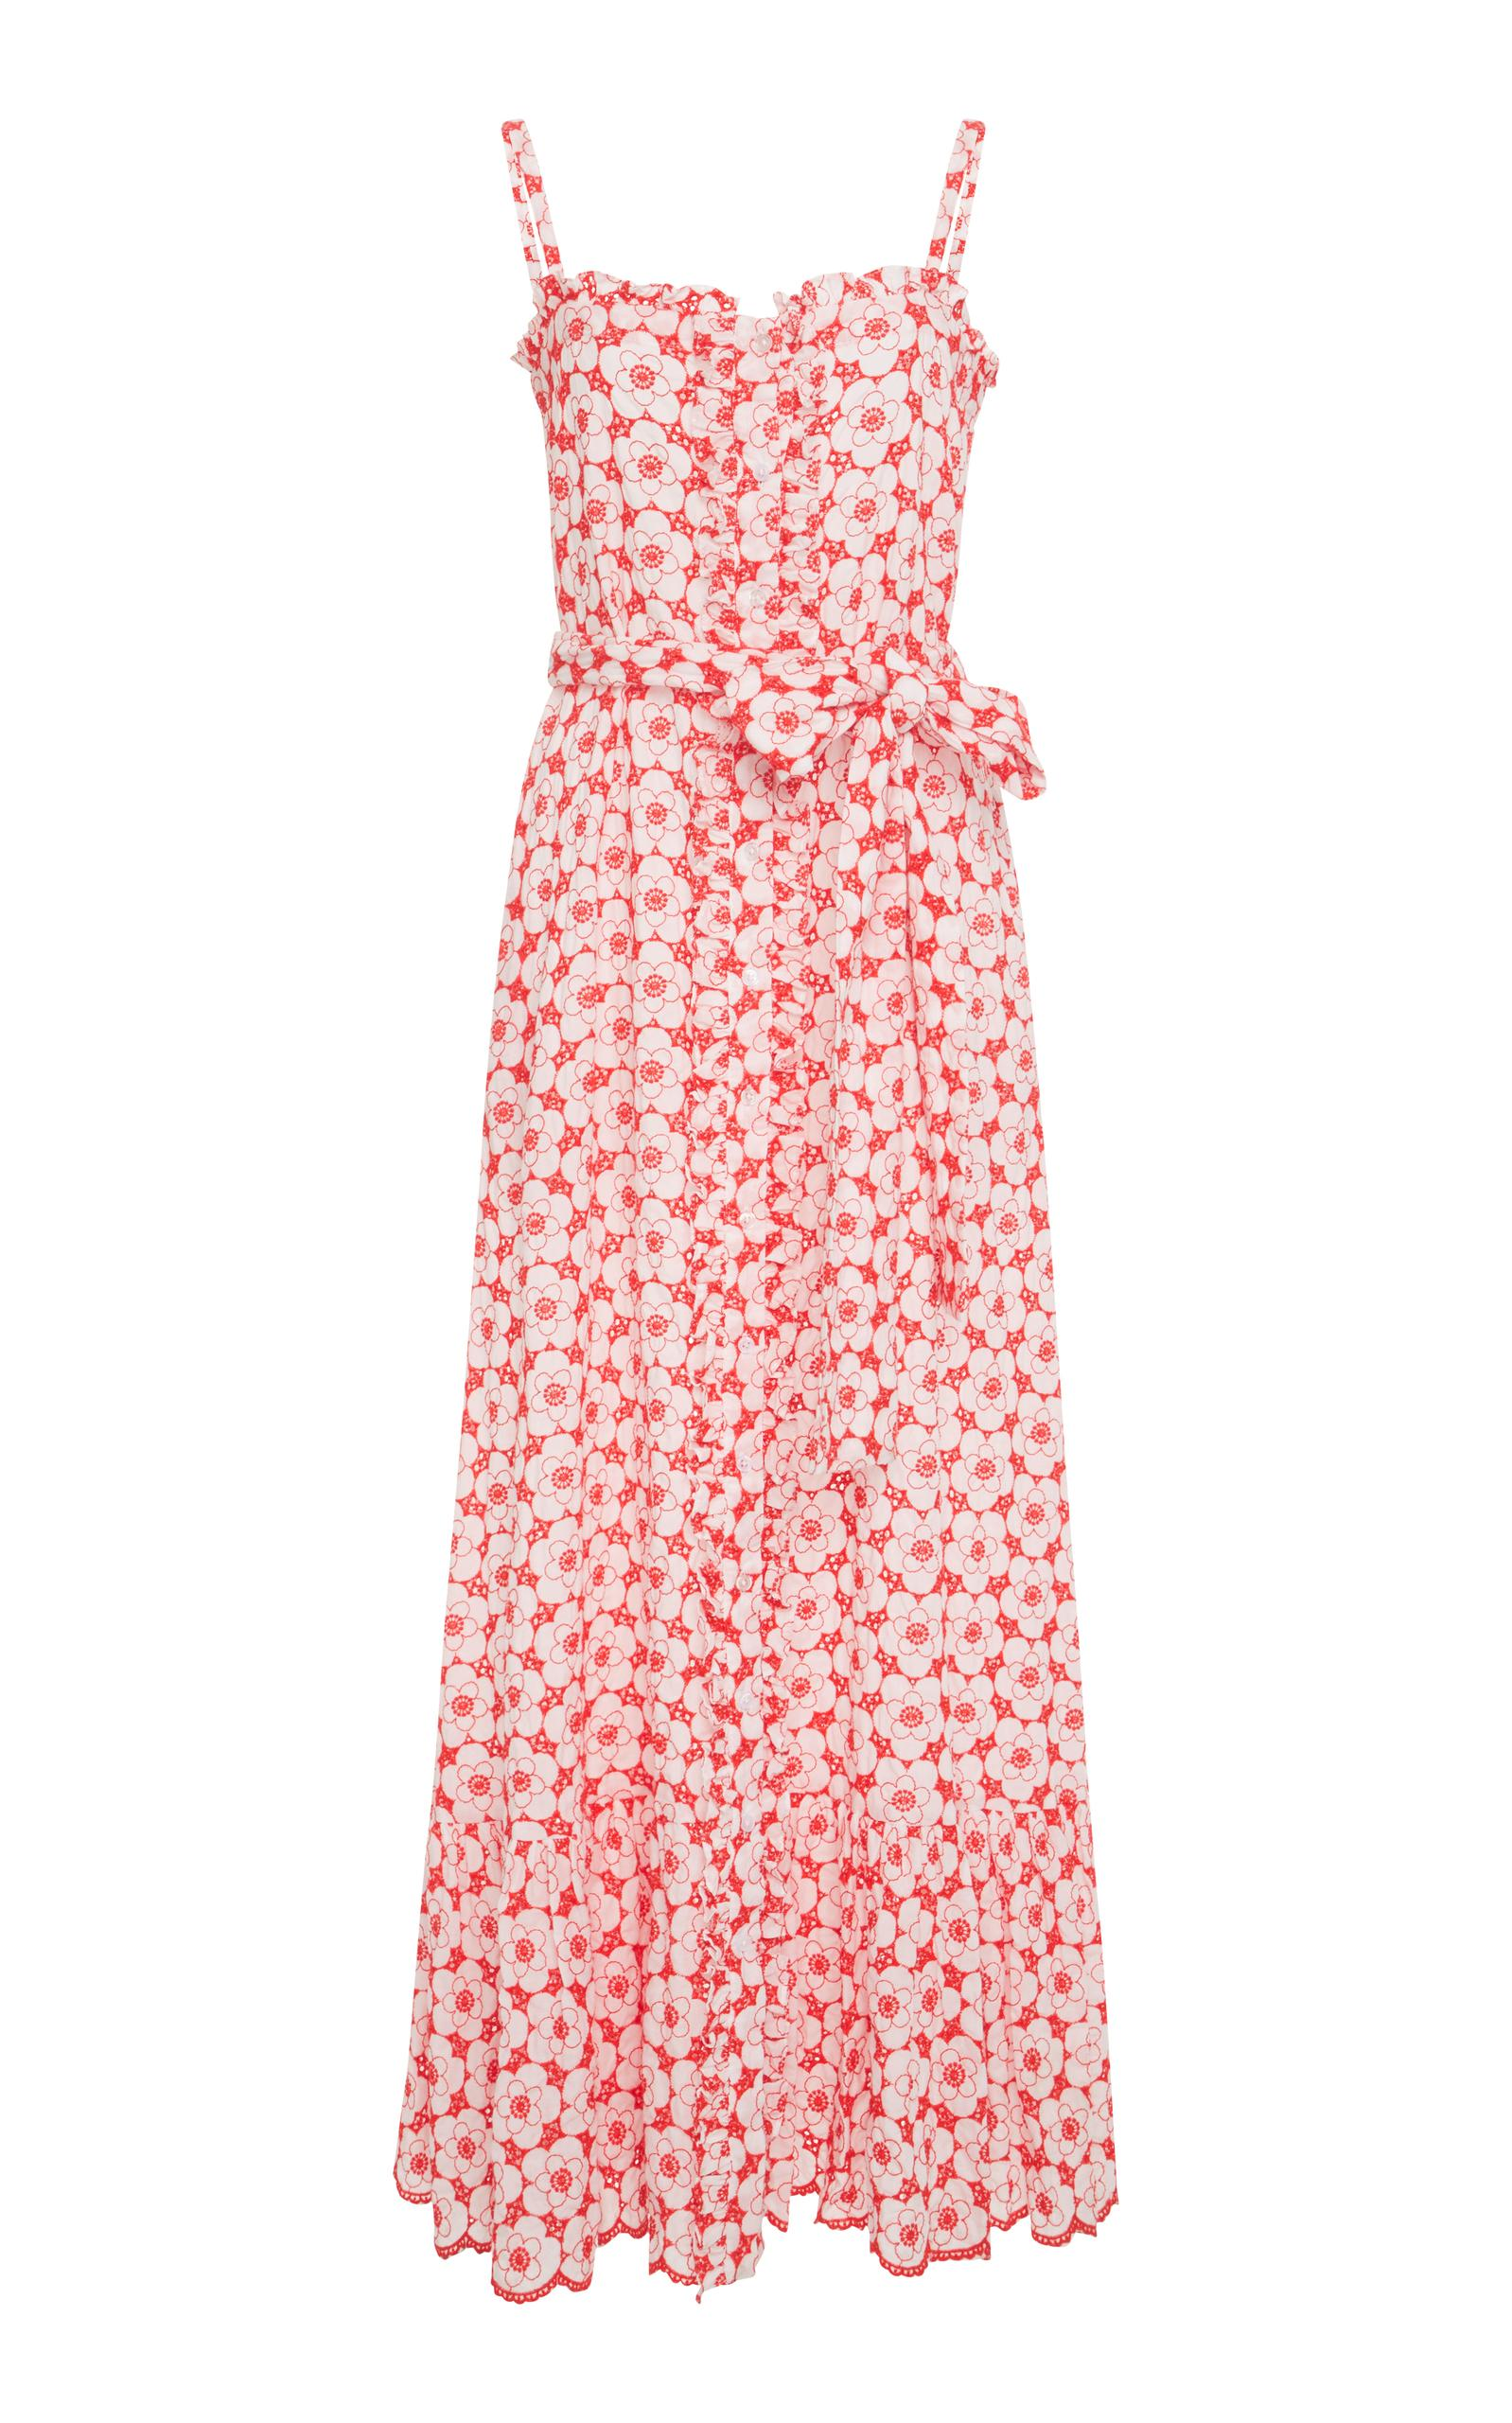 53b52b077c Lisa Marie Fernandez Floral-Embroidered Cotton Midi Dress In Cream Multi